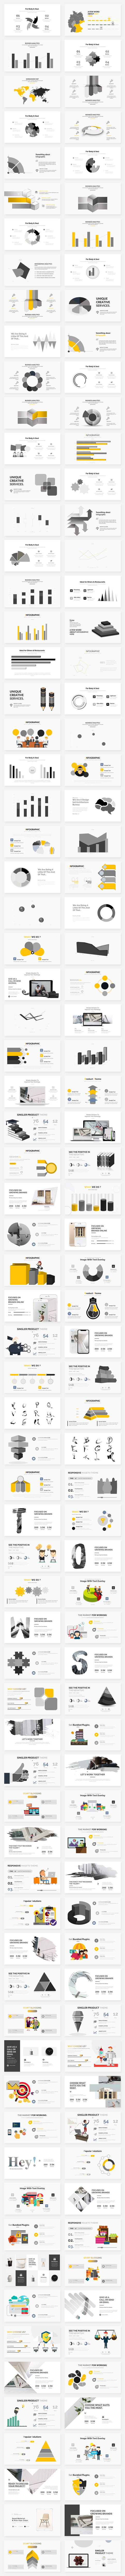 3 in 1 Yeahh Pack Keynote Creative Bundle Template - 1